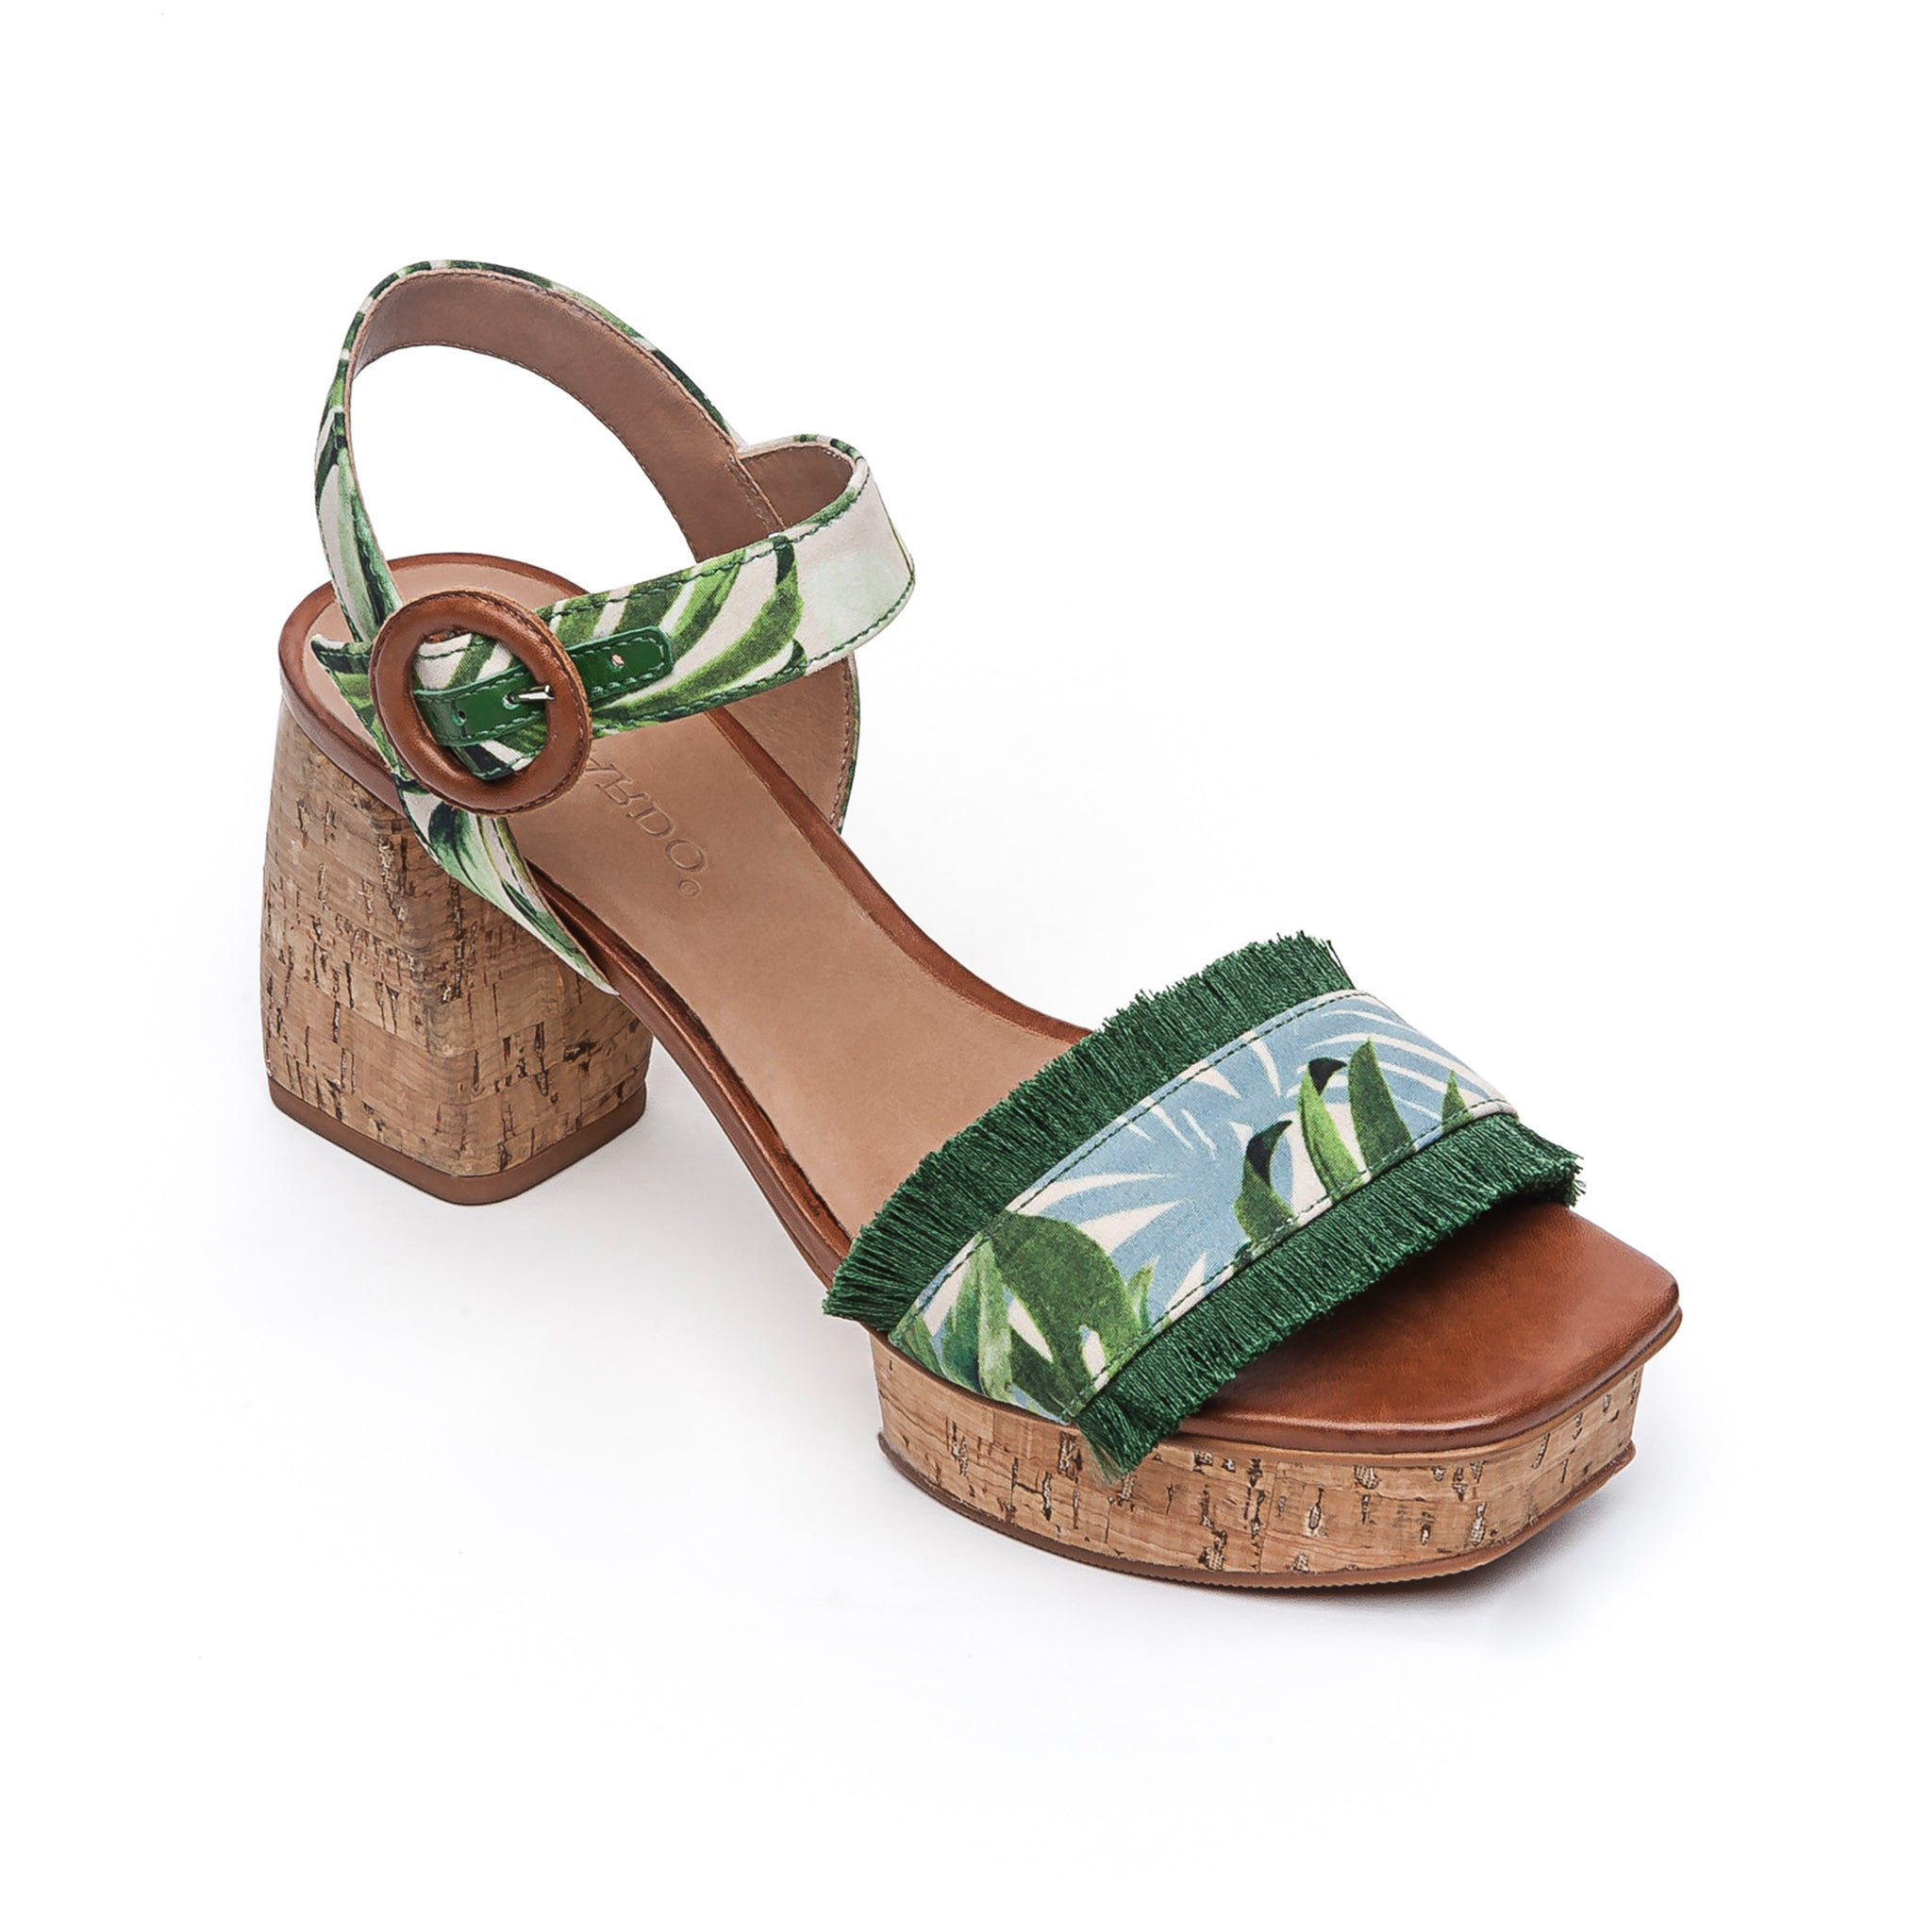 e2fb6c2ca3e Reagan Platform Sandal with Ankle Strap in Palm Fabric – Bernardo 1946